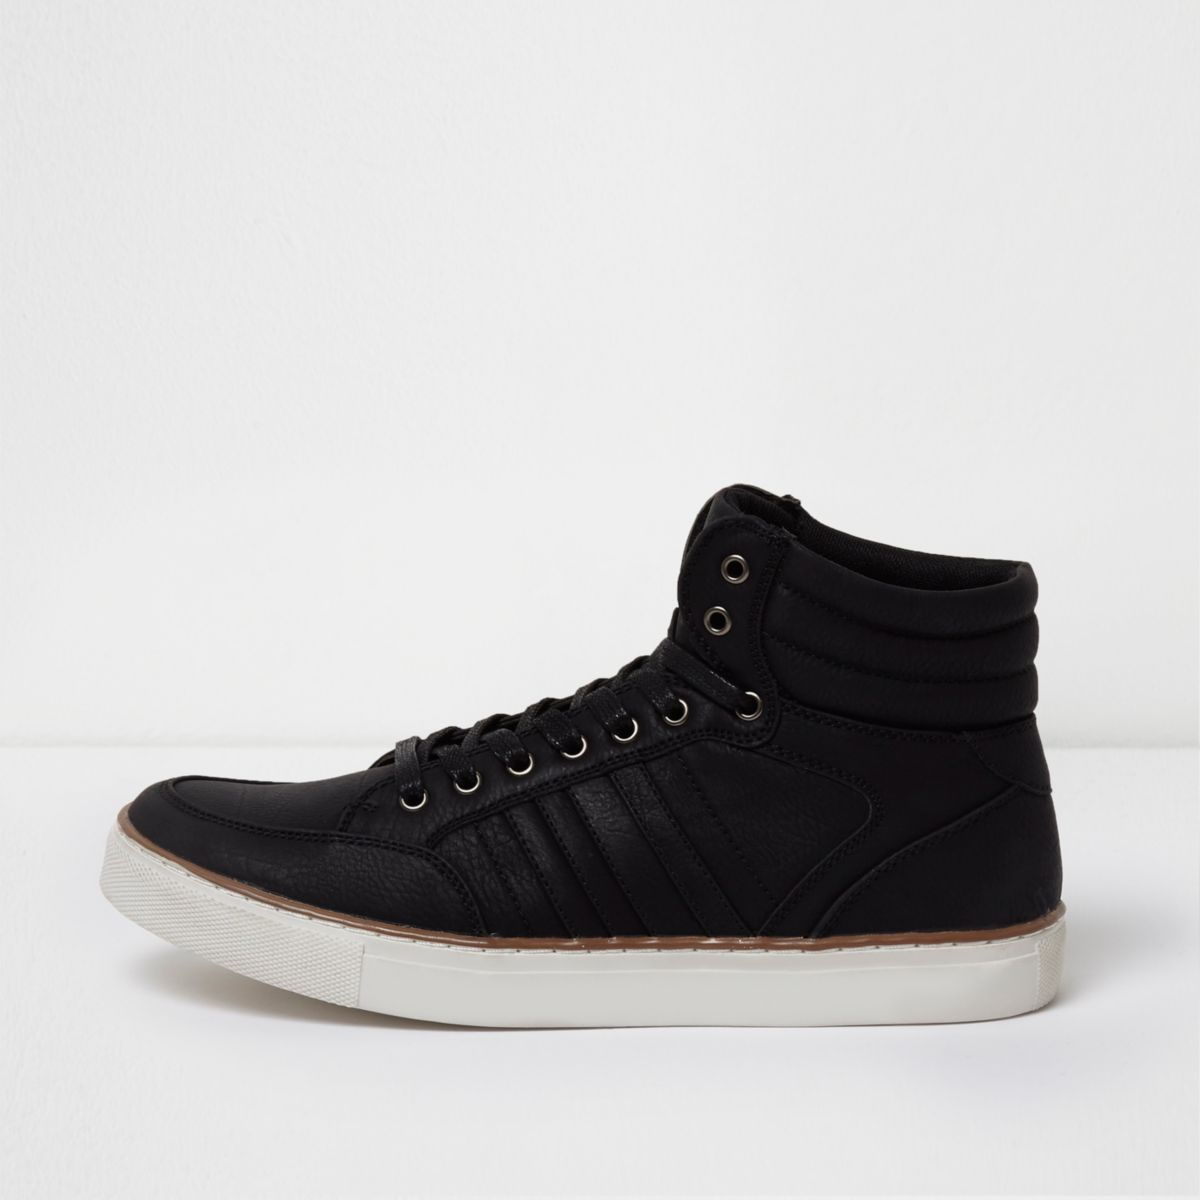 River Island Black mid top lace up sneakers